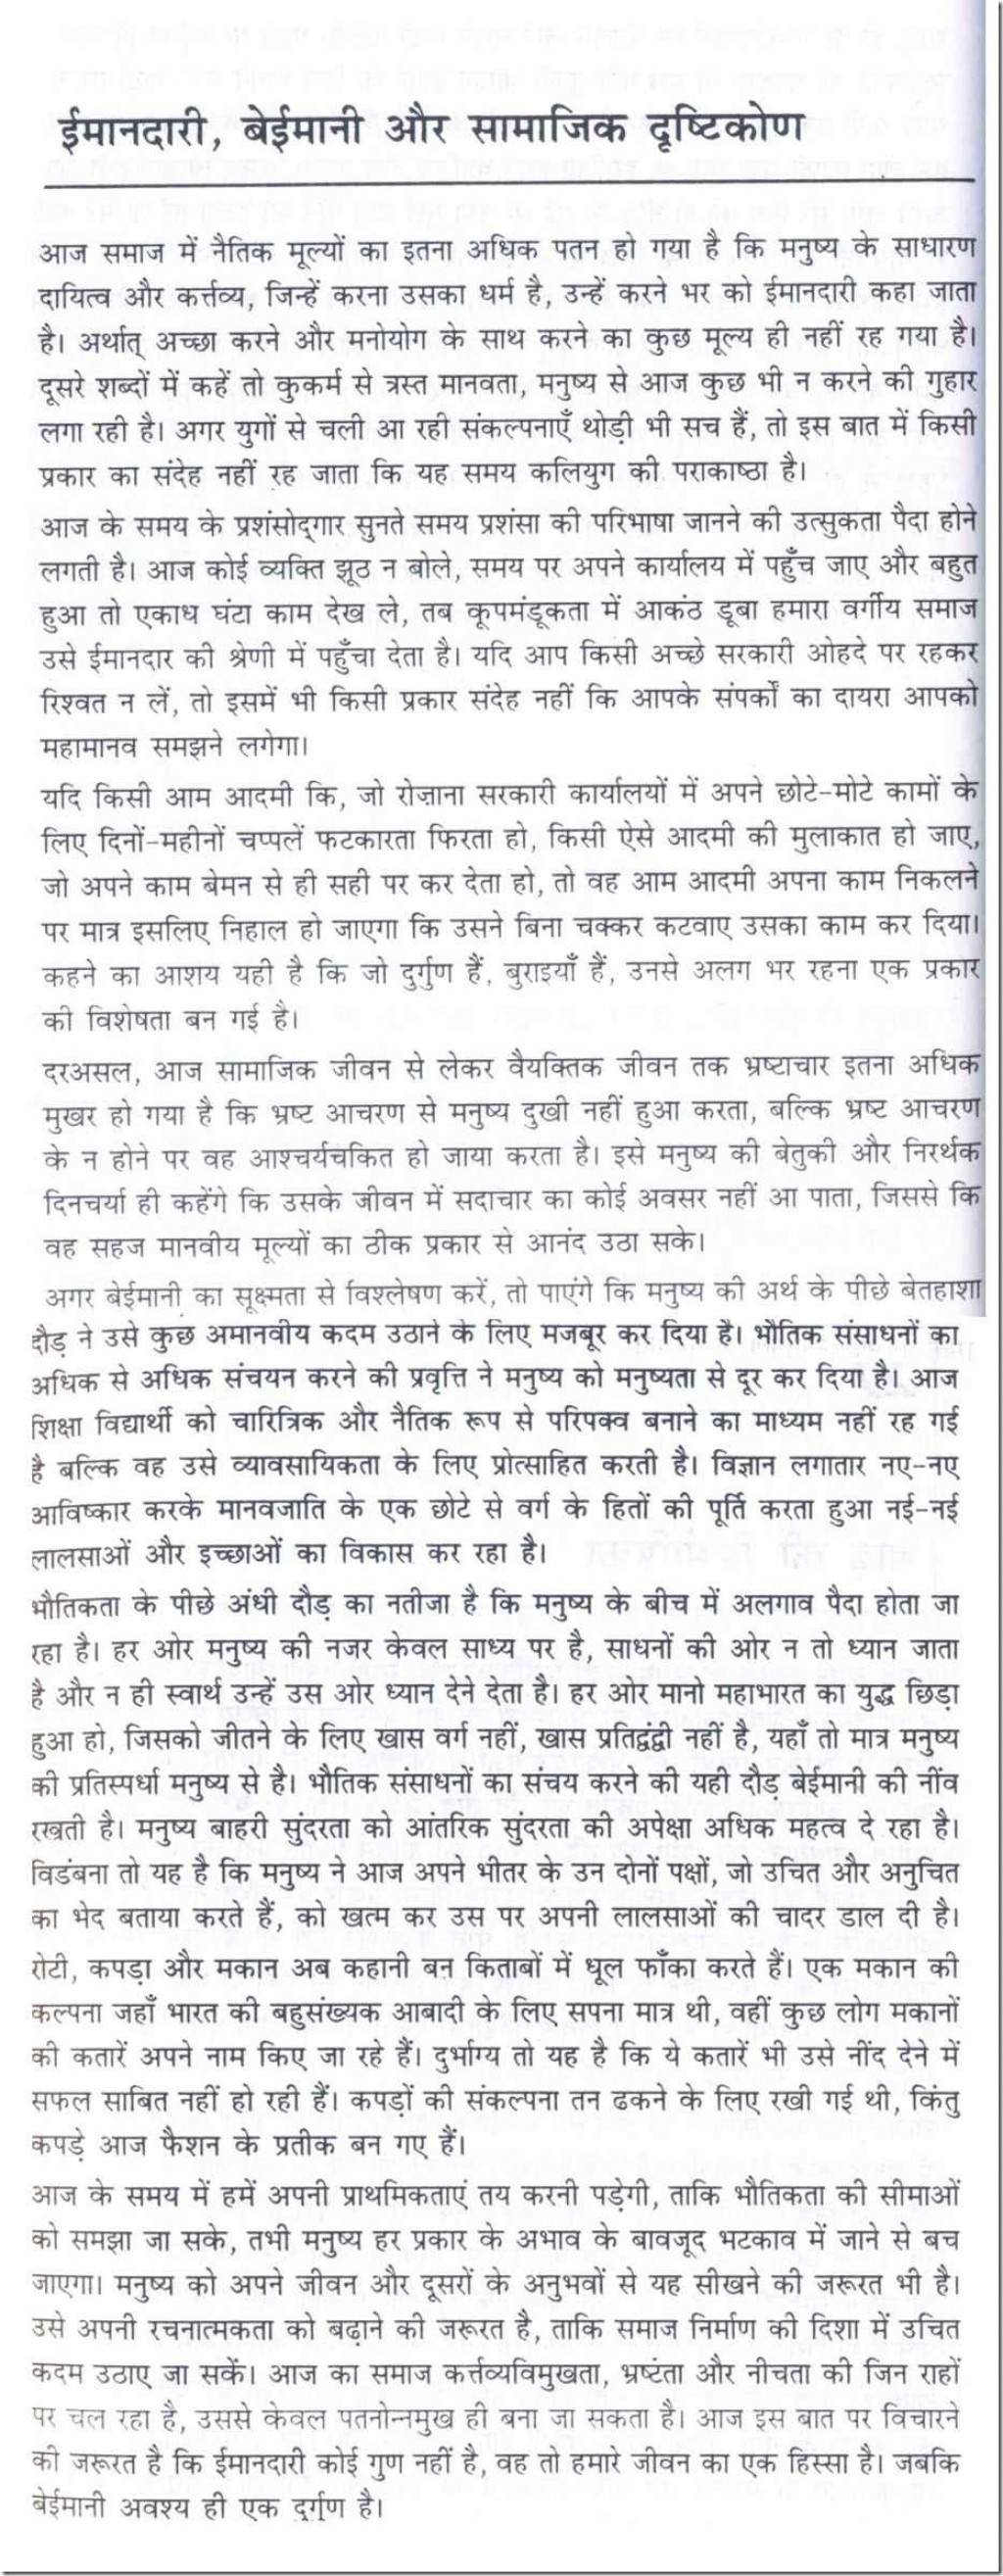 003 Essay Example 10026 Thumb Of Astounding Honesty Is The Only Way To Success On Best Policy For Class 8 In Hindi Large